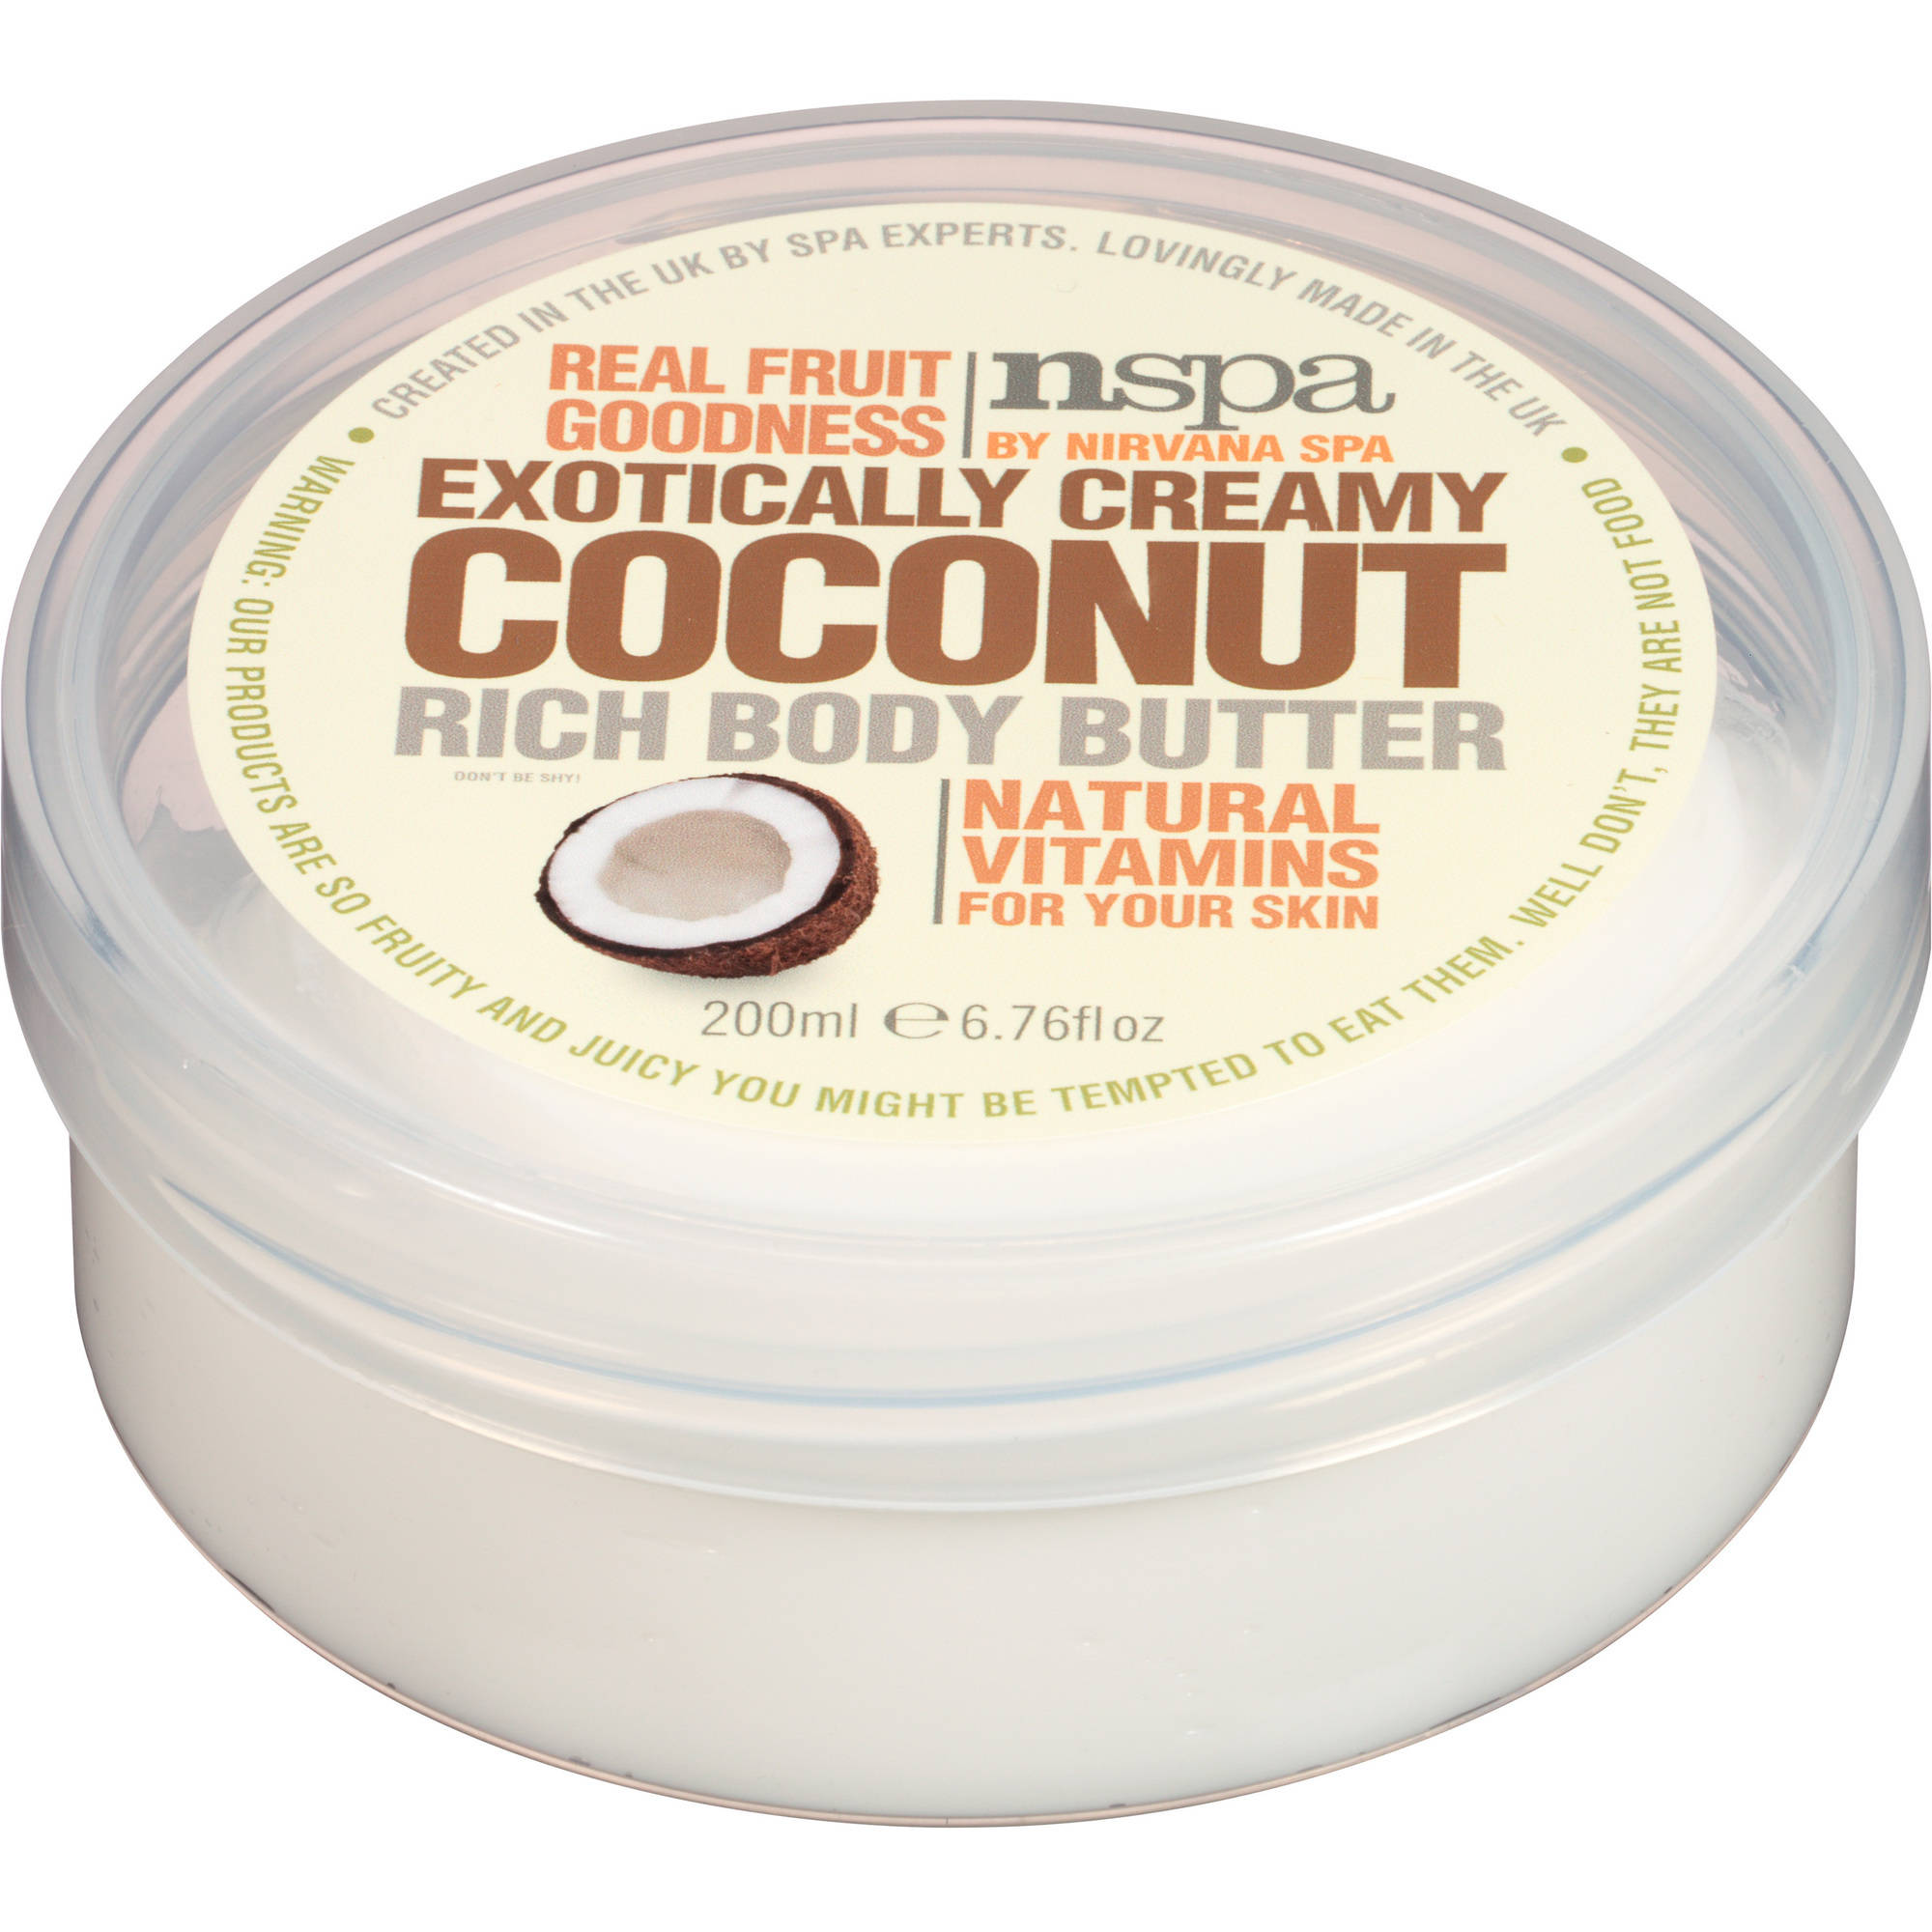 NSPA Exotically Creamy Coconut Rich Body Butter, 6.76 fl oz